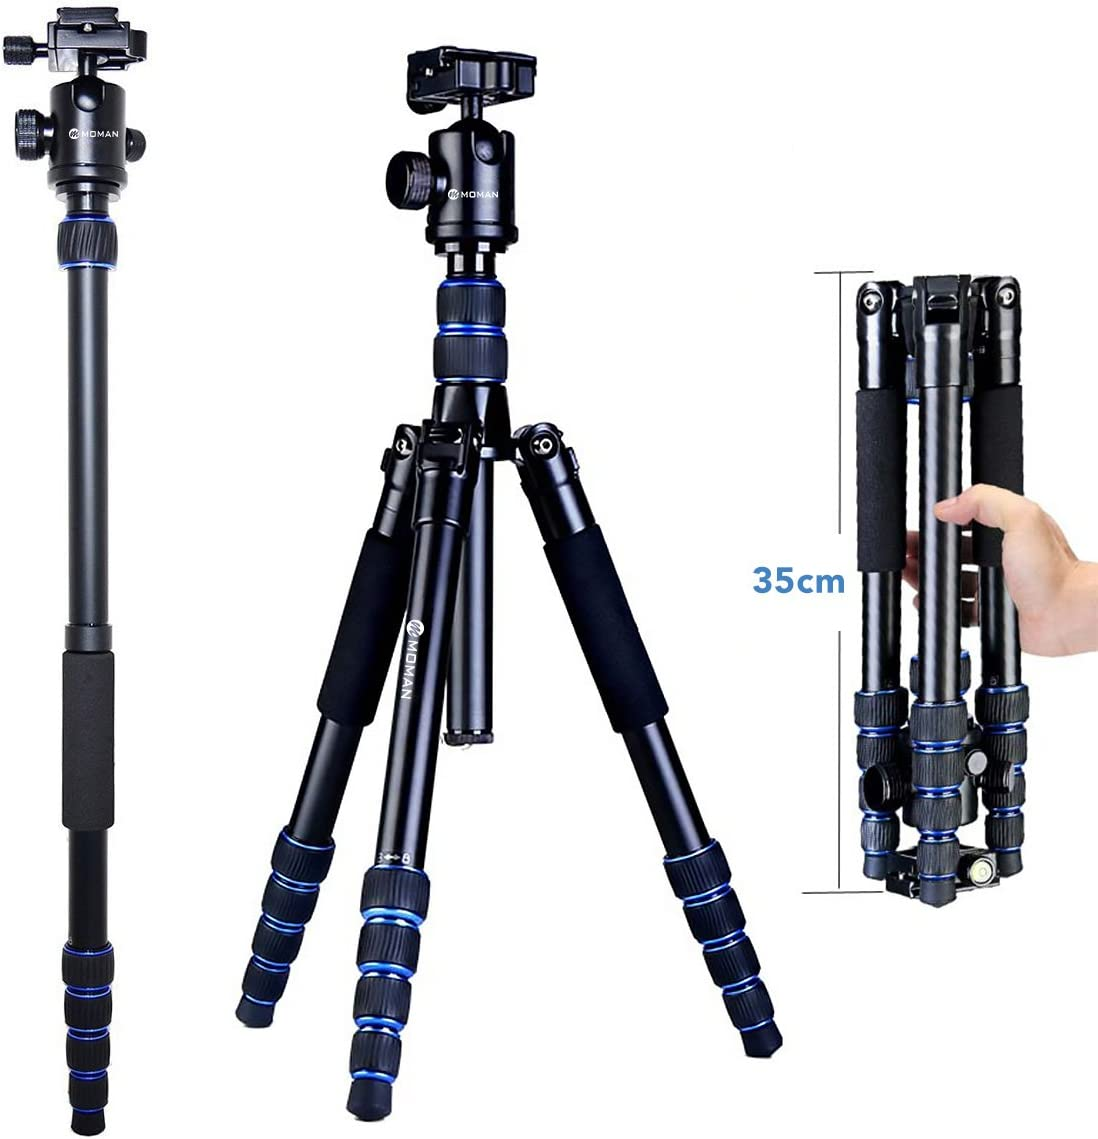 Moman Camera Tripod Monopod Alpenstock with Ball Head, Aluminum Alloy Foldable Axis Inversion Design, Weight Capacity of 33 Lb